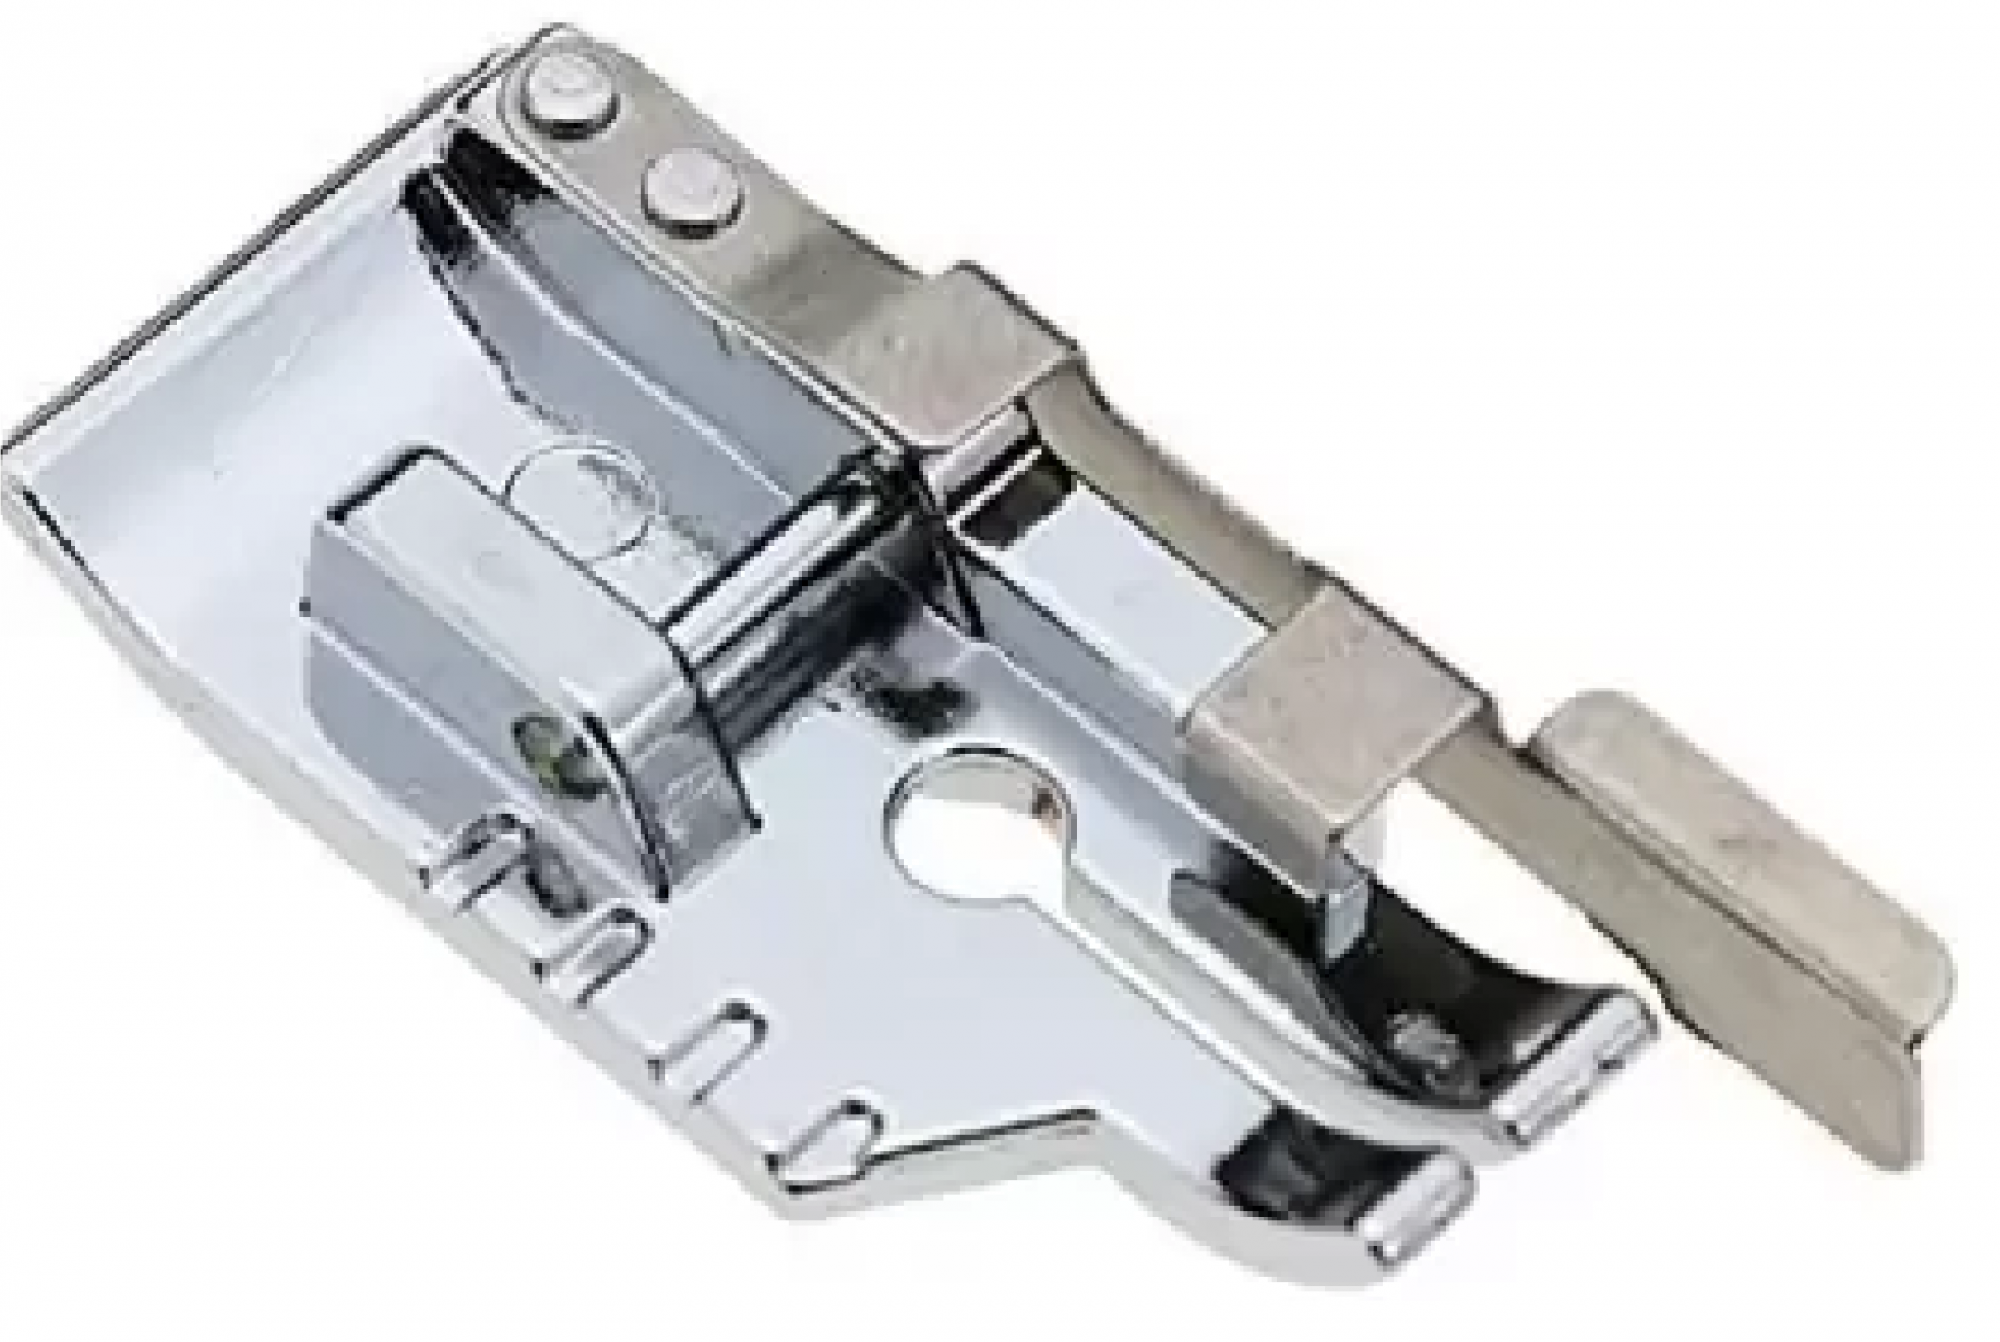 1/4 SEWING MACHINE PRESSER FOOT WITH EDGE GUIDE